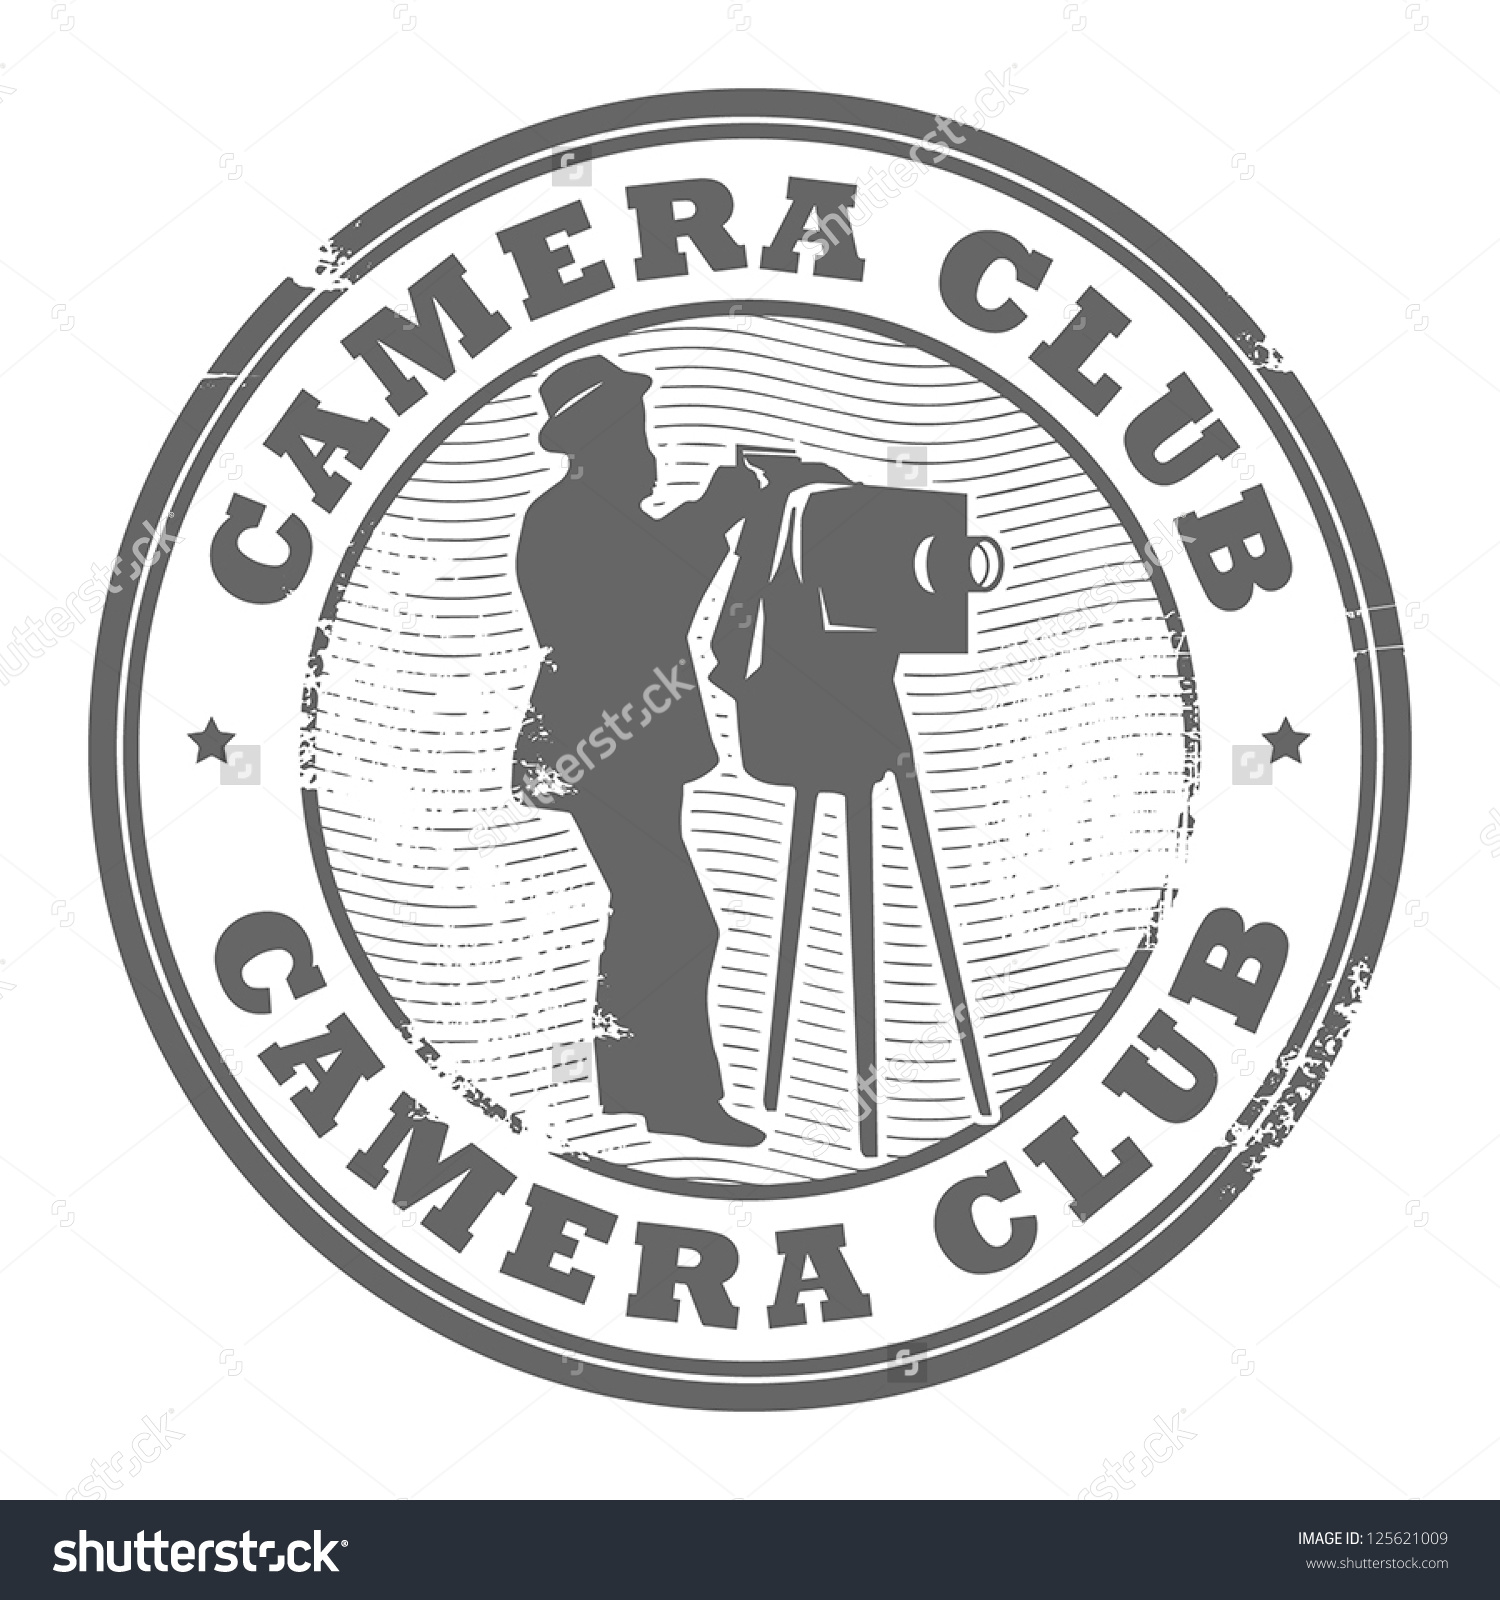 Stamp Text Camera Club Written Inside Stock Vector 125621009.